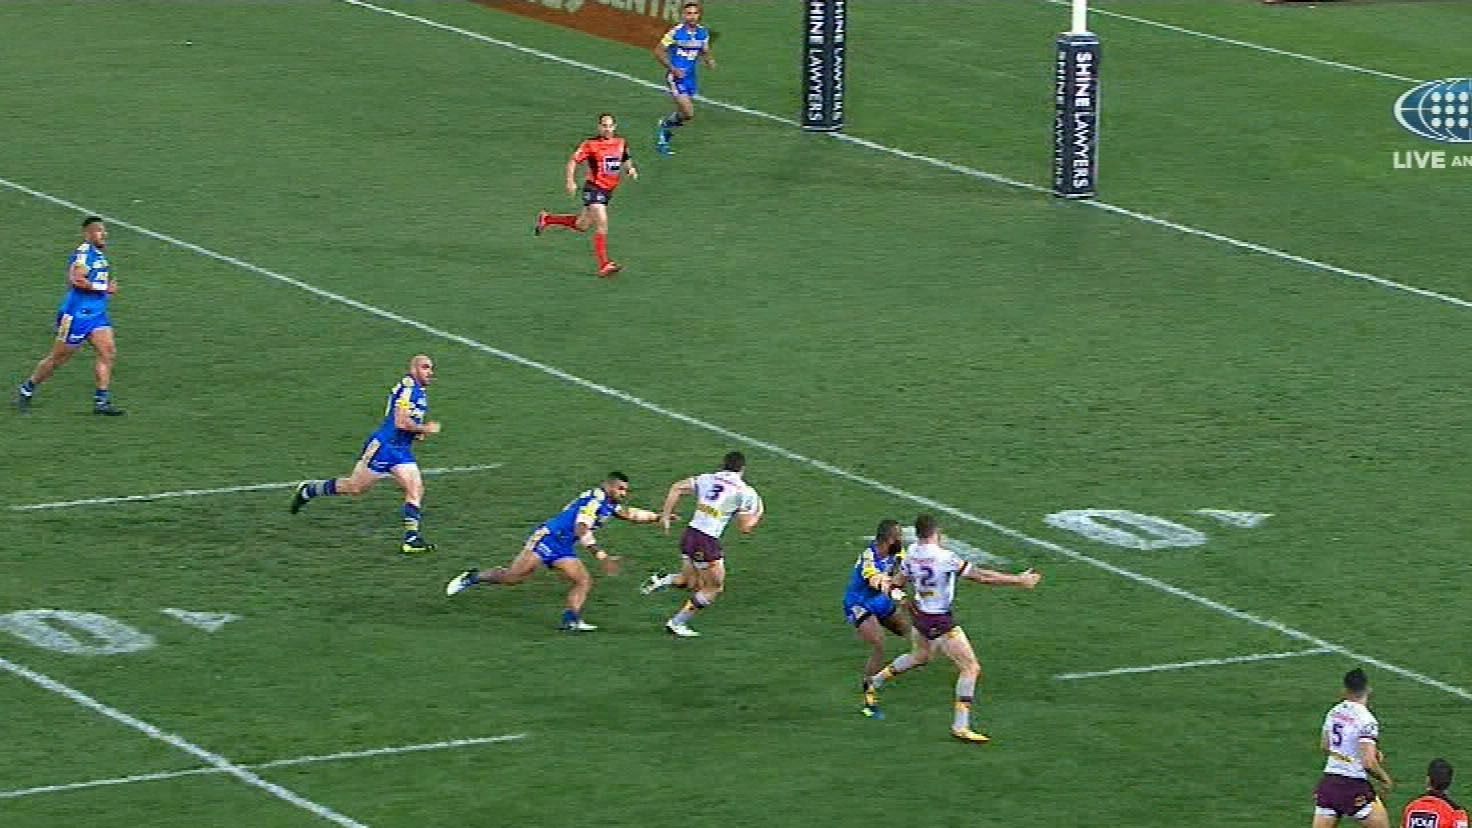 Eels claim fifth straight-win in NRL